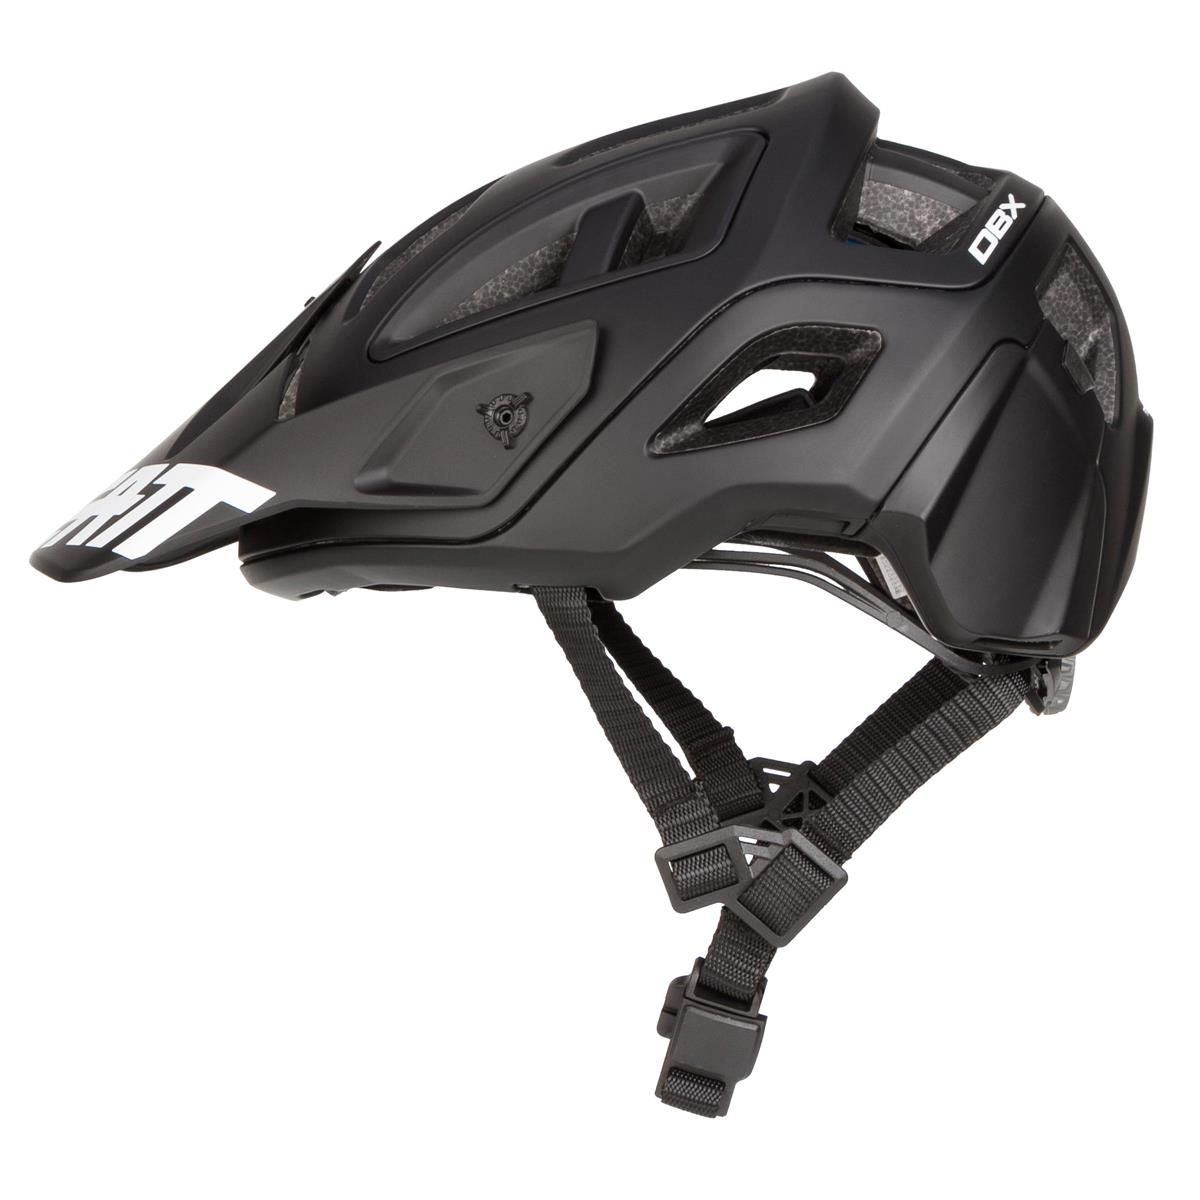 leatt enduro mtb helm dbx 3 0 enduro schwarz wei 2019. Black Bedroom Furniture Sets. Home Design Ideas